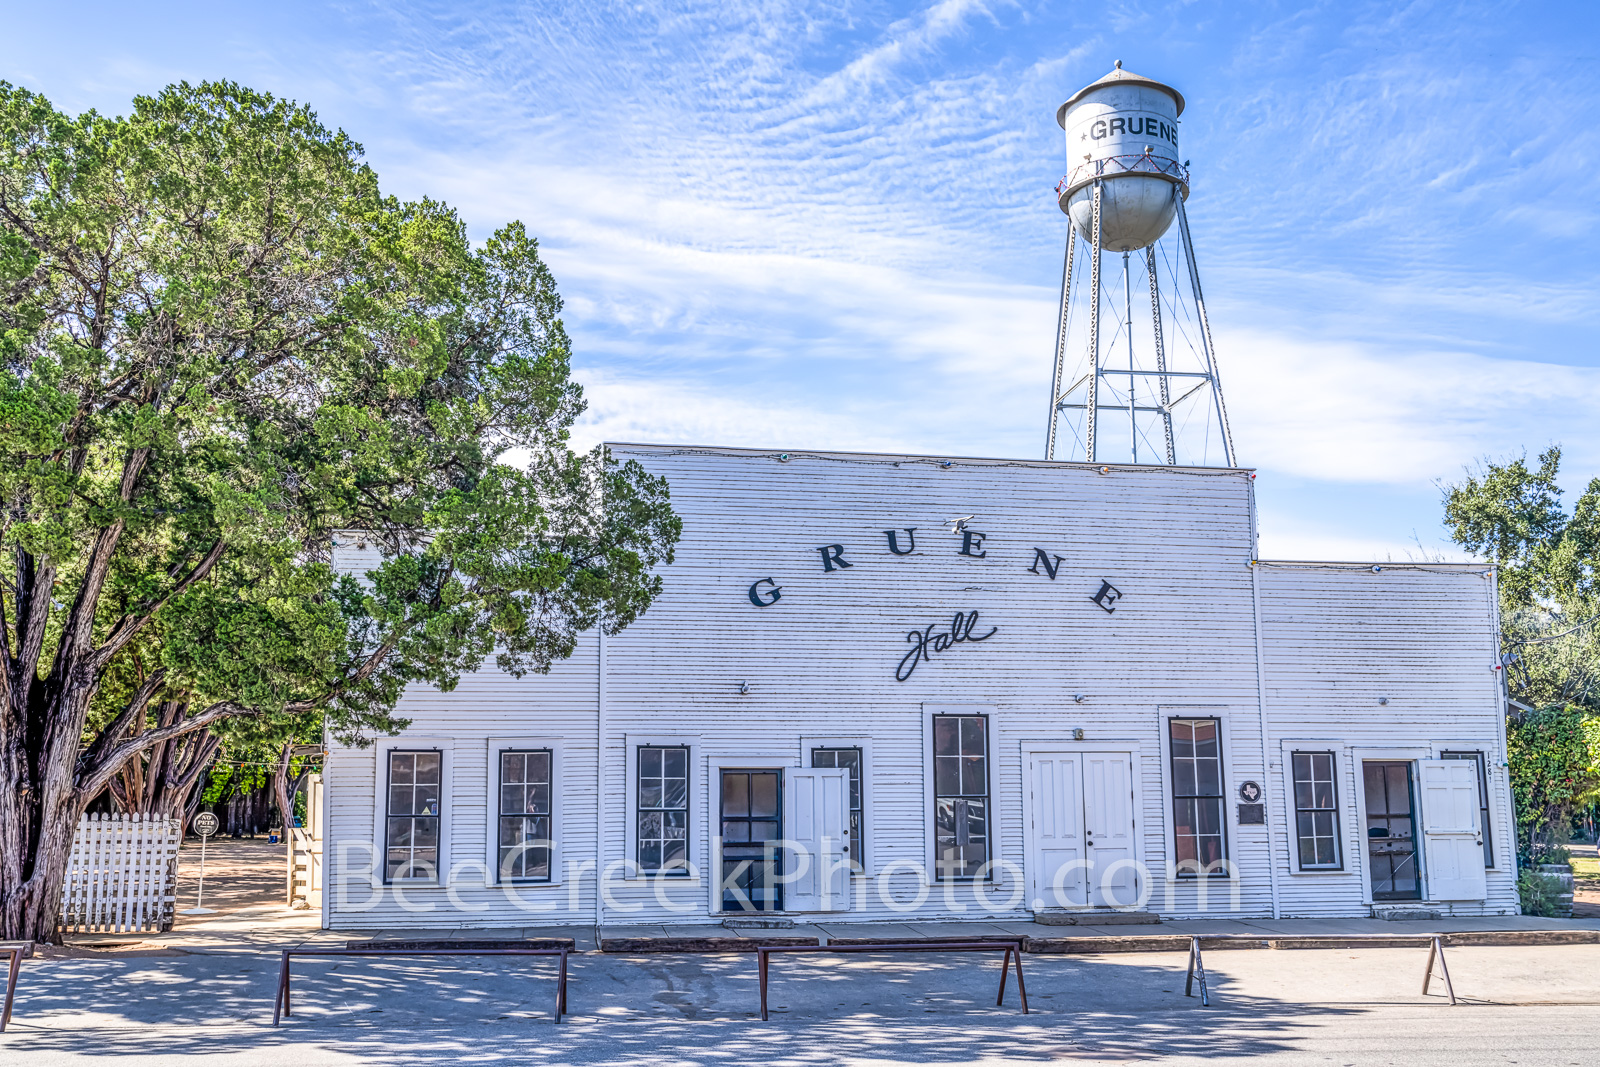 Gruene Hall, Gruene Texas, dance hall, saloon, town, community, Earnest Gruene, german, german town, Texas, texas hill country, visit, National Register of Historic Places, western swing,